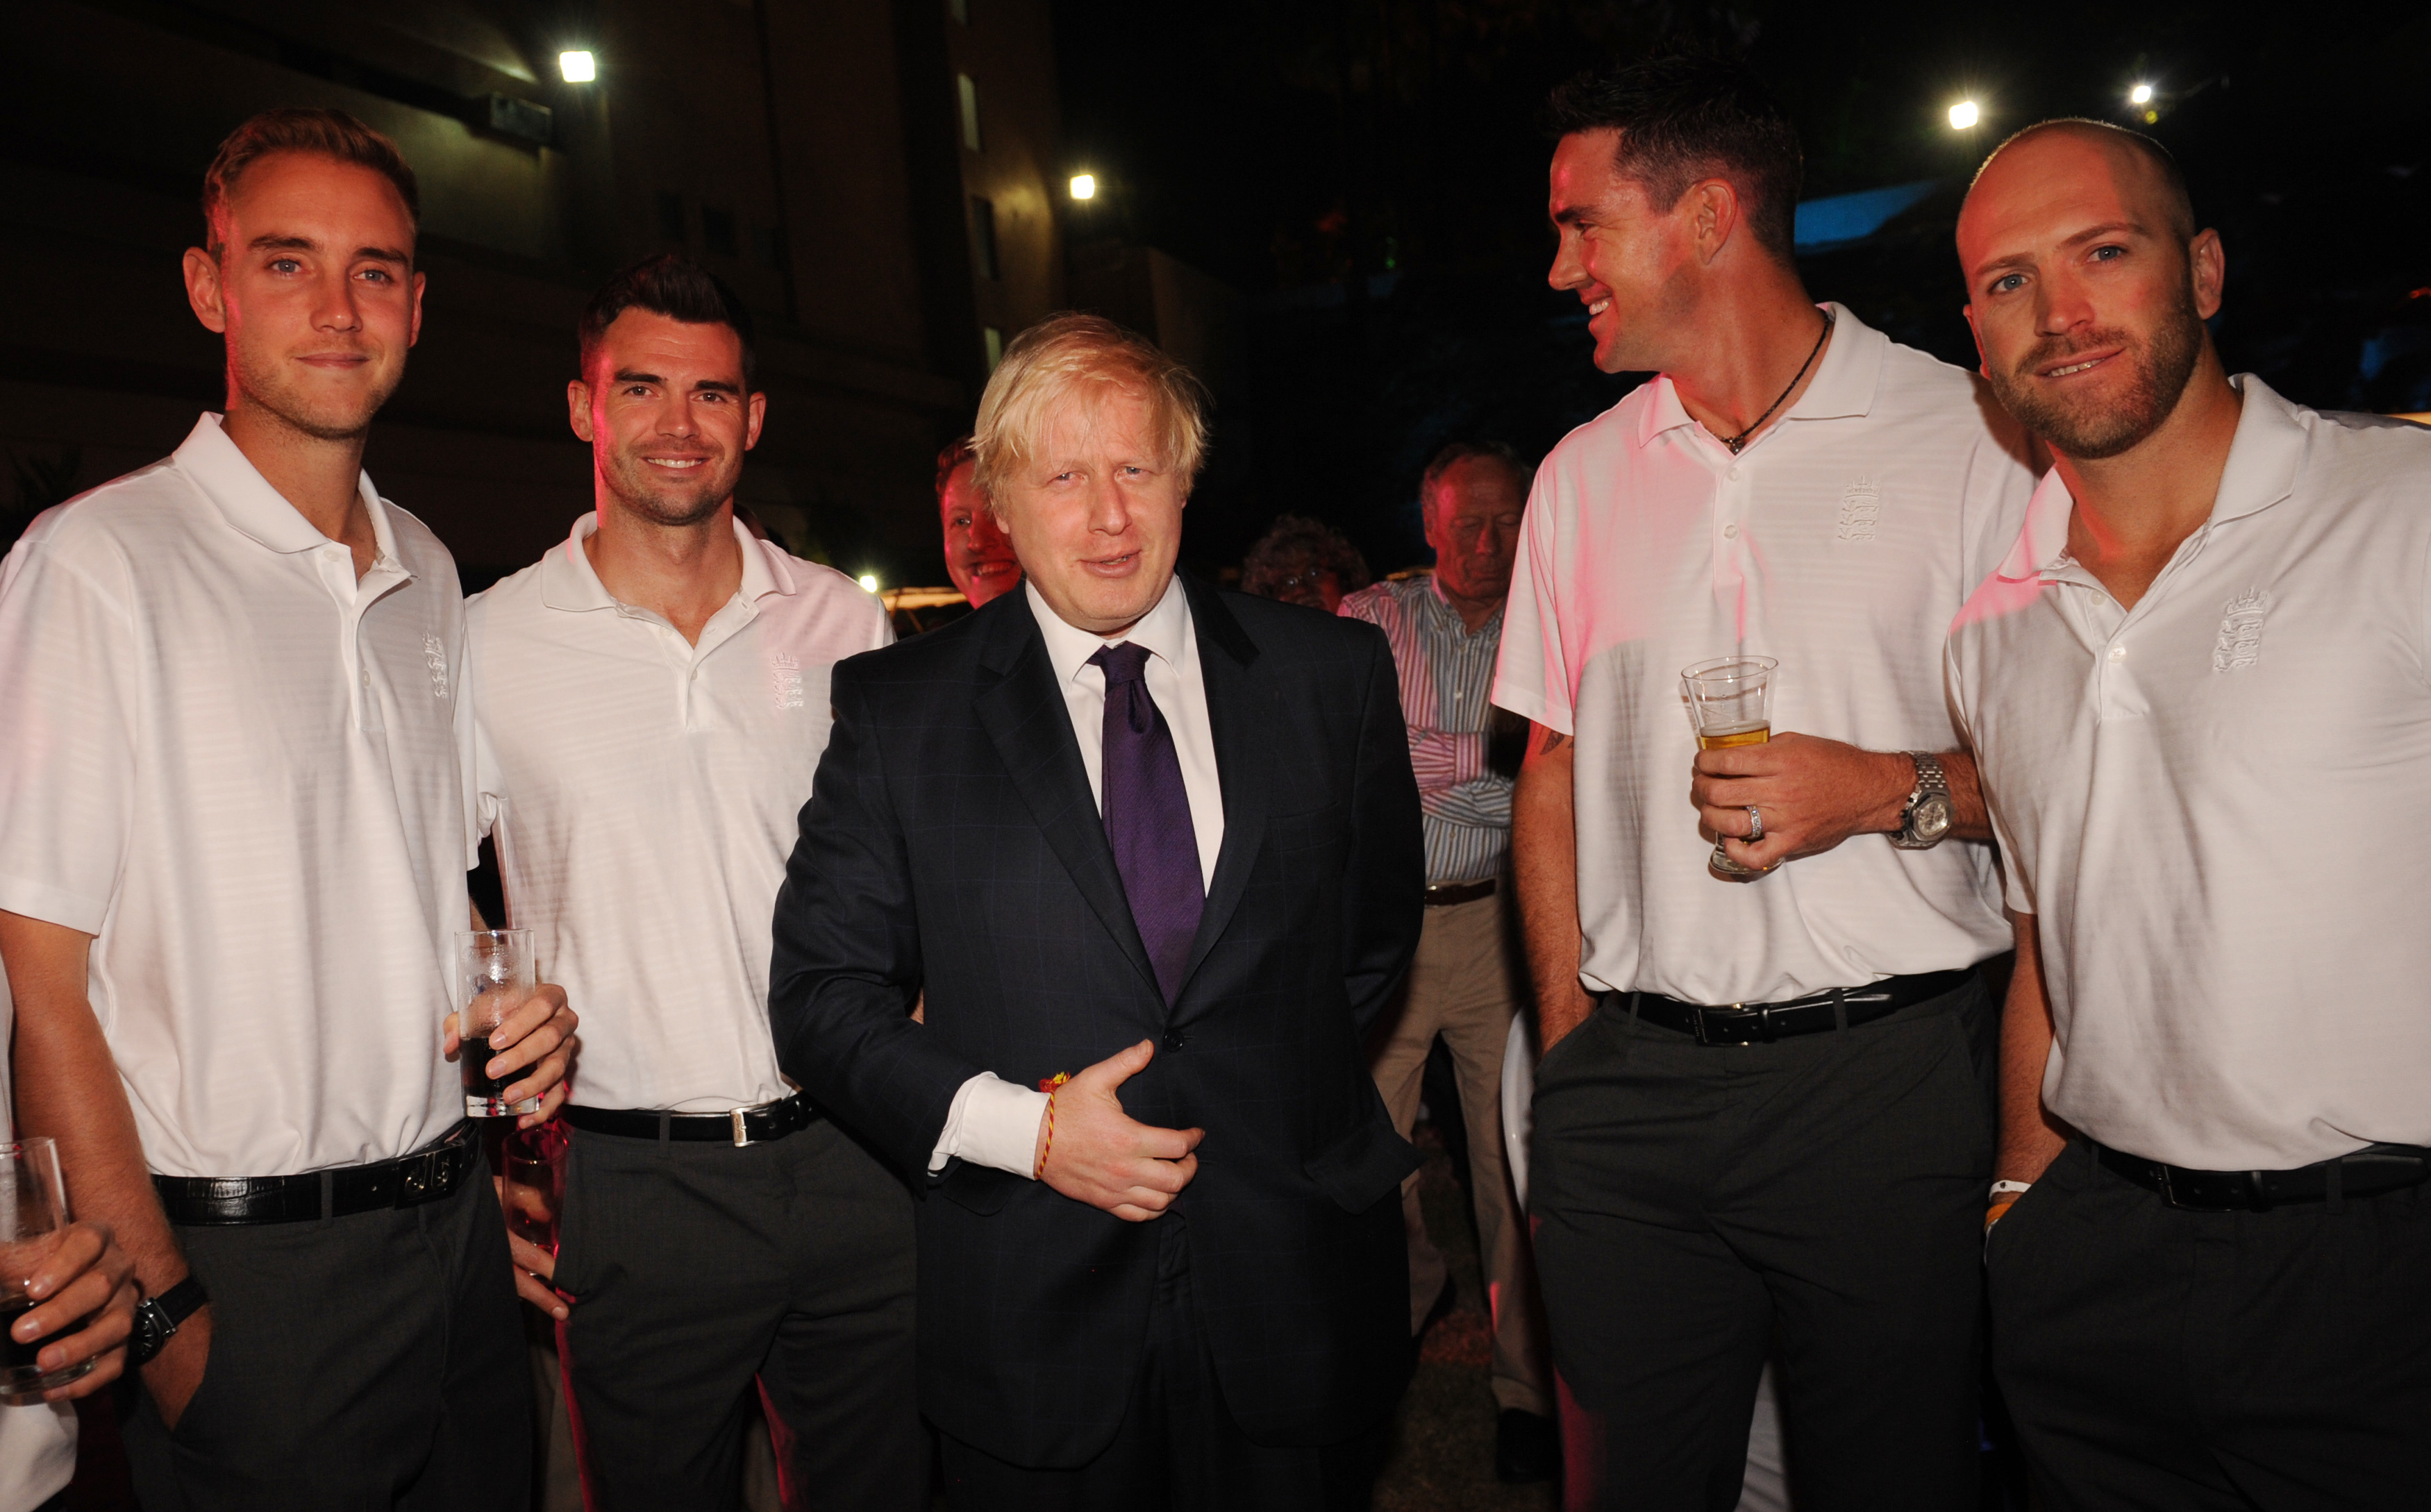 England cricketers Stuart Broad (left), James Anderson (2nd left), Kevin Pietersen (2nd right) and Matt Prior (right) pose for a photograph with Mayor of London Boris Johnson at a reception hosted by the Mayor in Mumbai, India. PRESS ASSOCIATION Photo. Picture date: Wednesday November 28, 2012. Mr Johnson is on a week long tour of India where he will be trying to persuade Indian businesses to invest in London. See PA story POLITICS Johnson. Photo credit should read: Stefan Rousseau/PA Wire